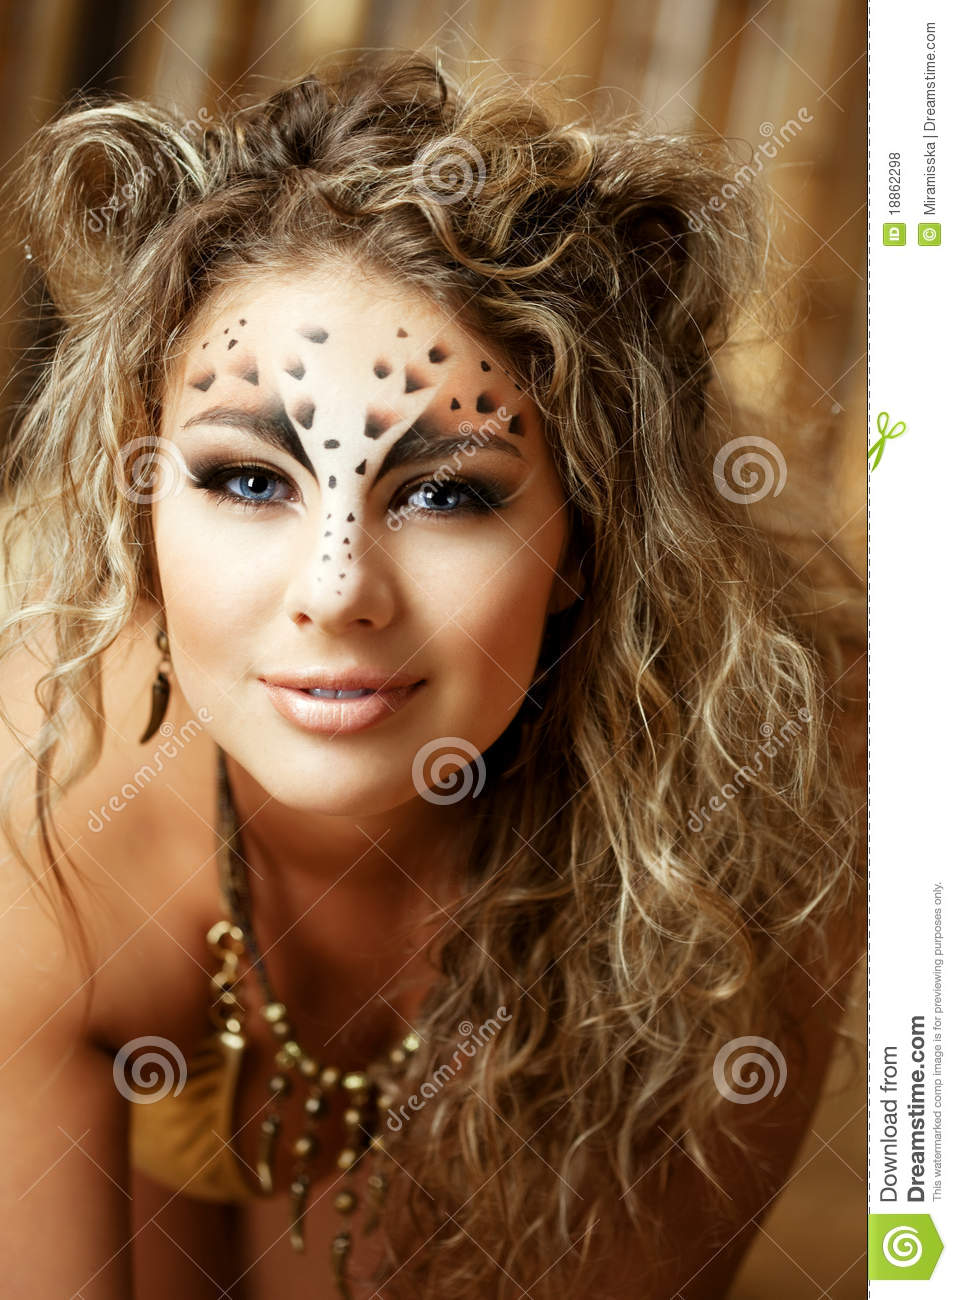 girl with an unusual make up as a leopard stock photo image of glamor bamboo 18862298. Black Bedroom Furniture Sets. Home Design Ideas